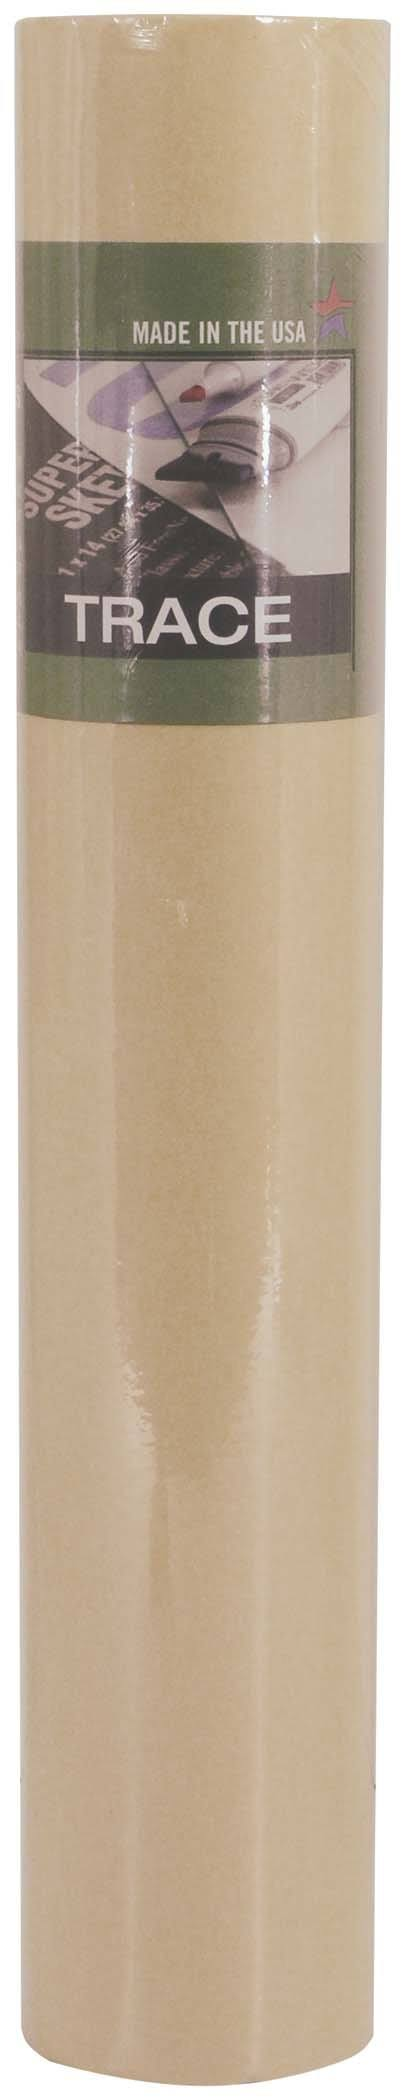 Pro Art Sketch Paper Roll, Canary Colour